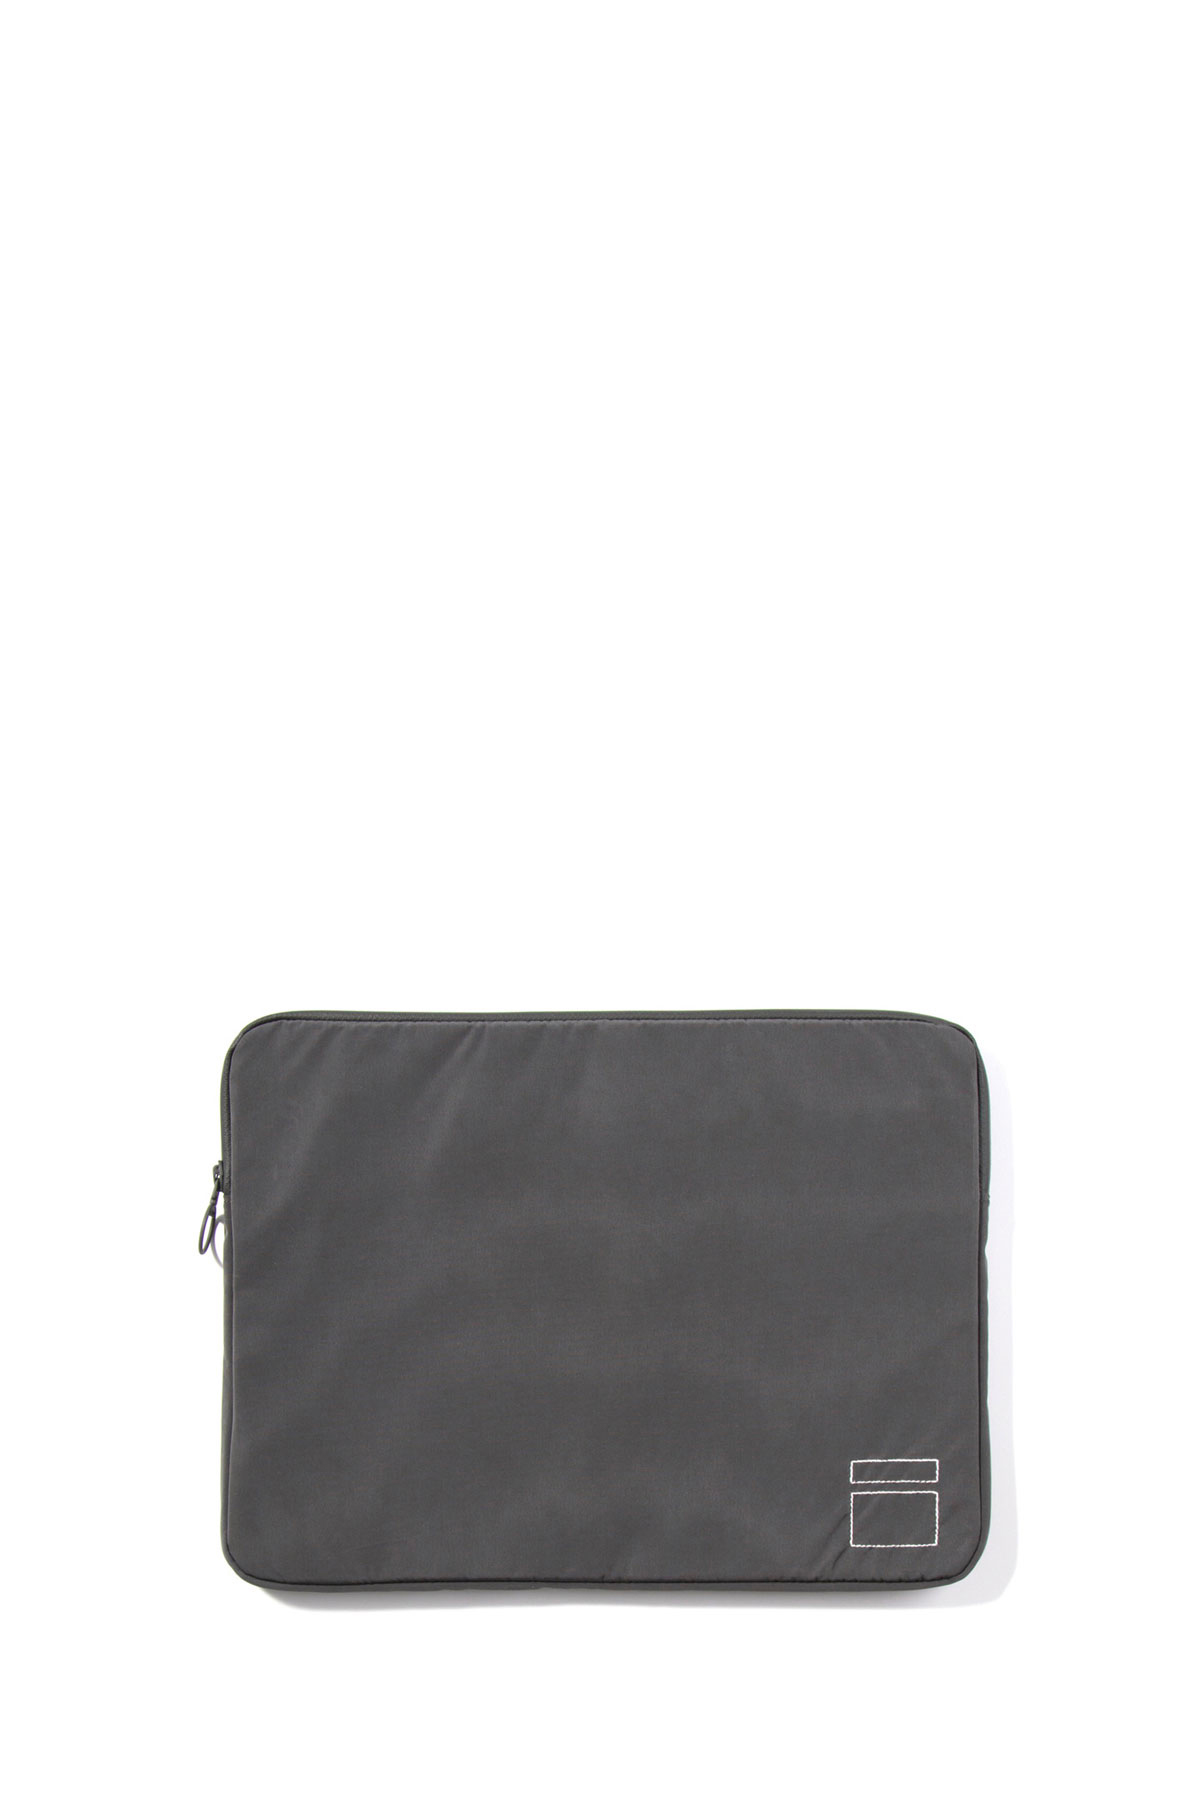 Blankof : PLG 01 16IN Document Case (O.Grey)